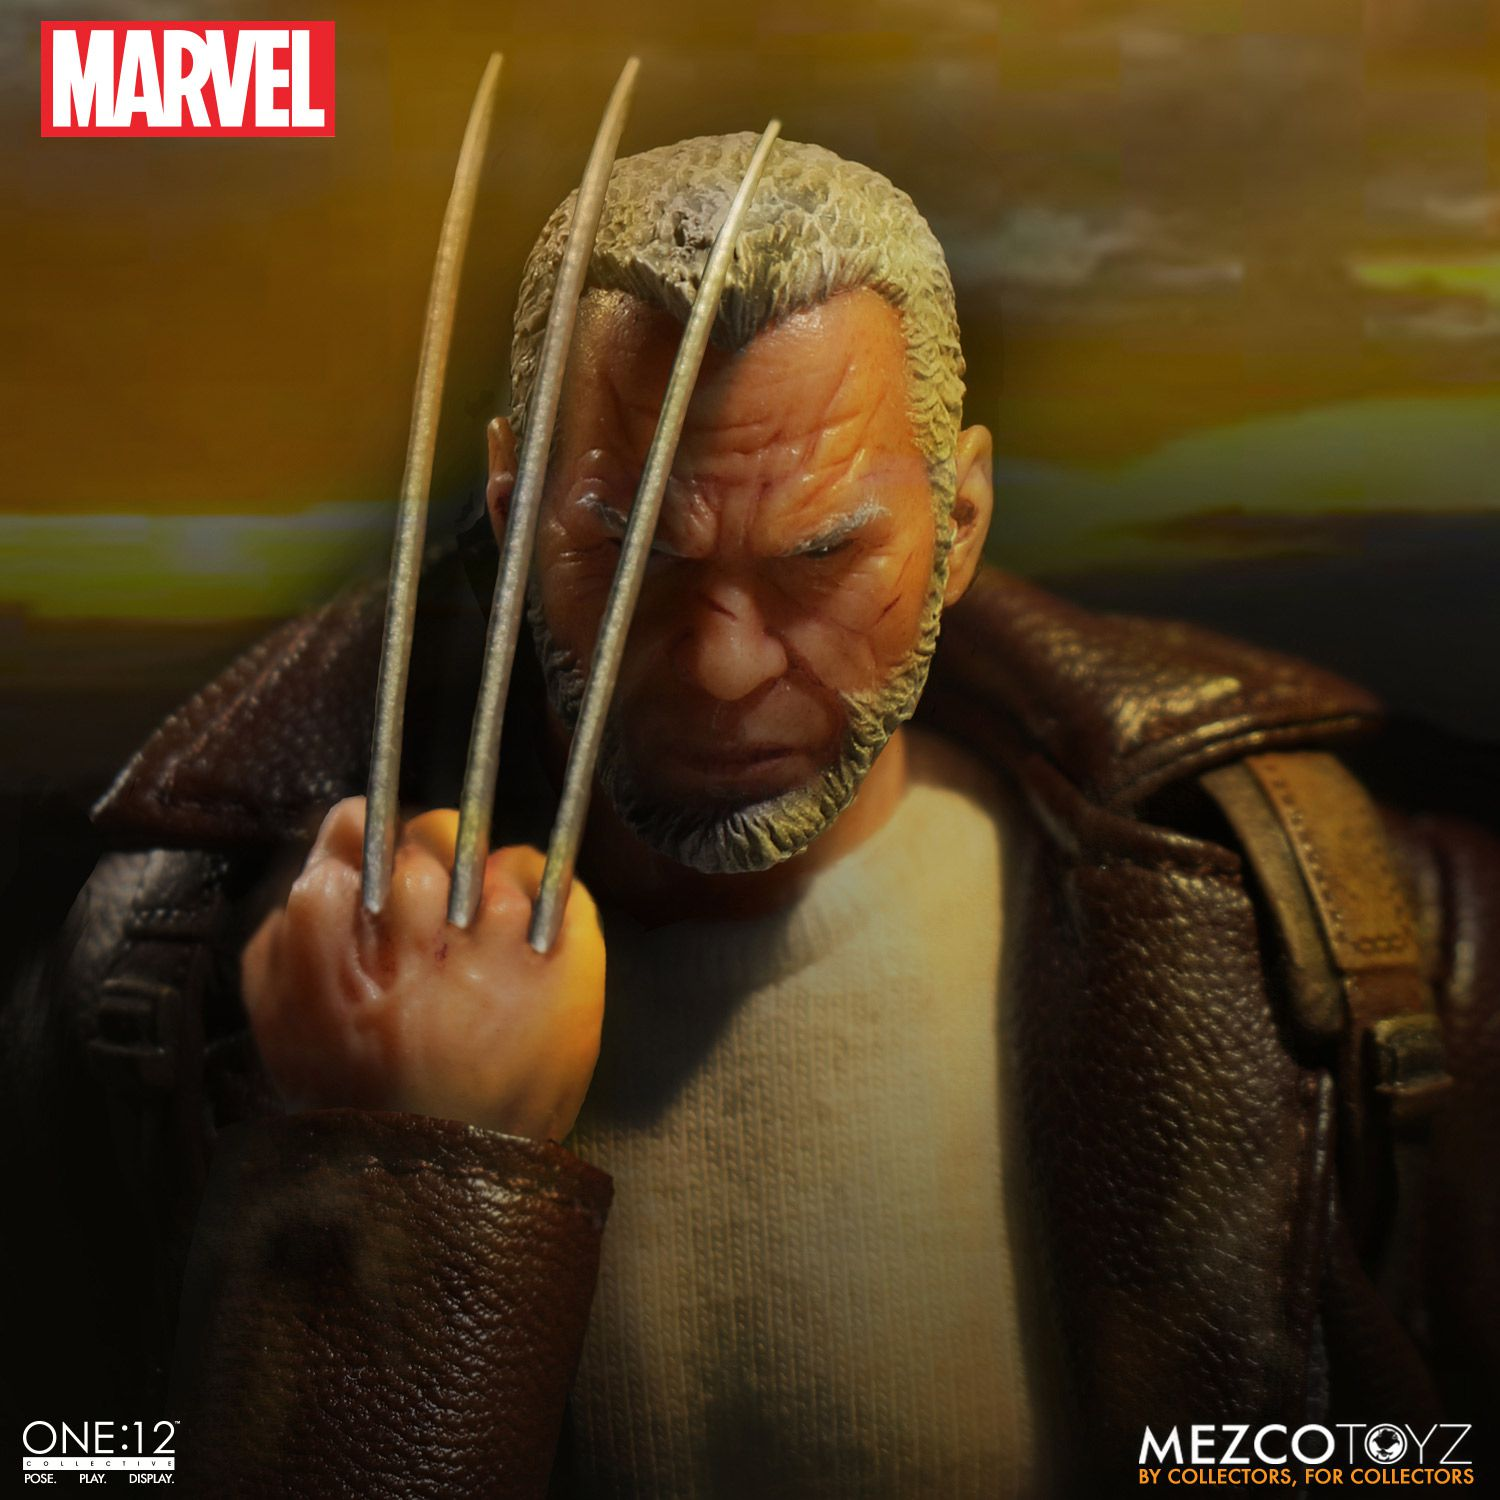 Mezco One:12 Collective Marvel Wolverine Old Man Logan Figure